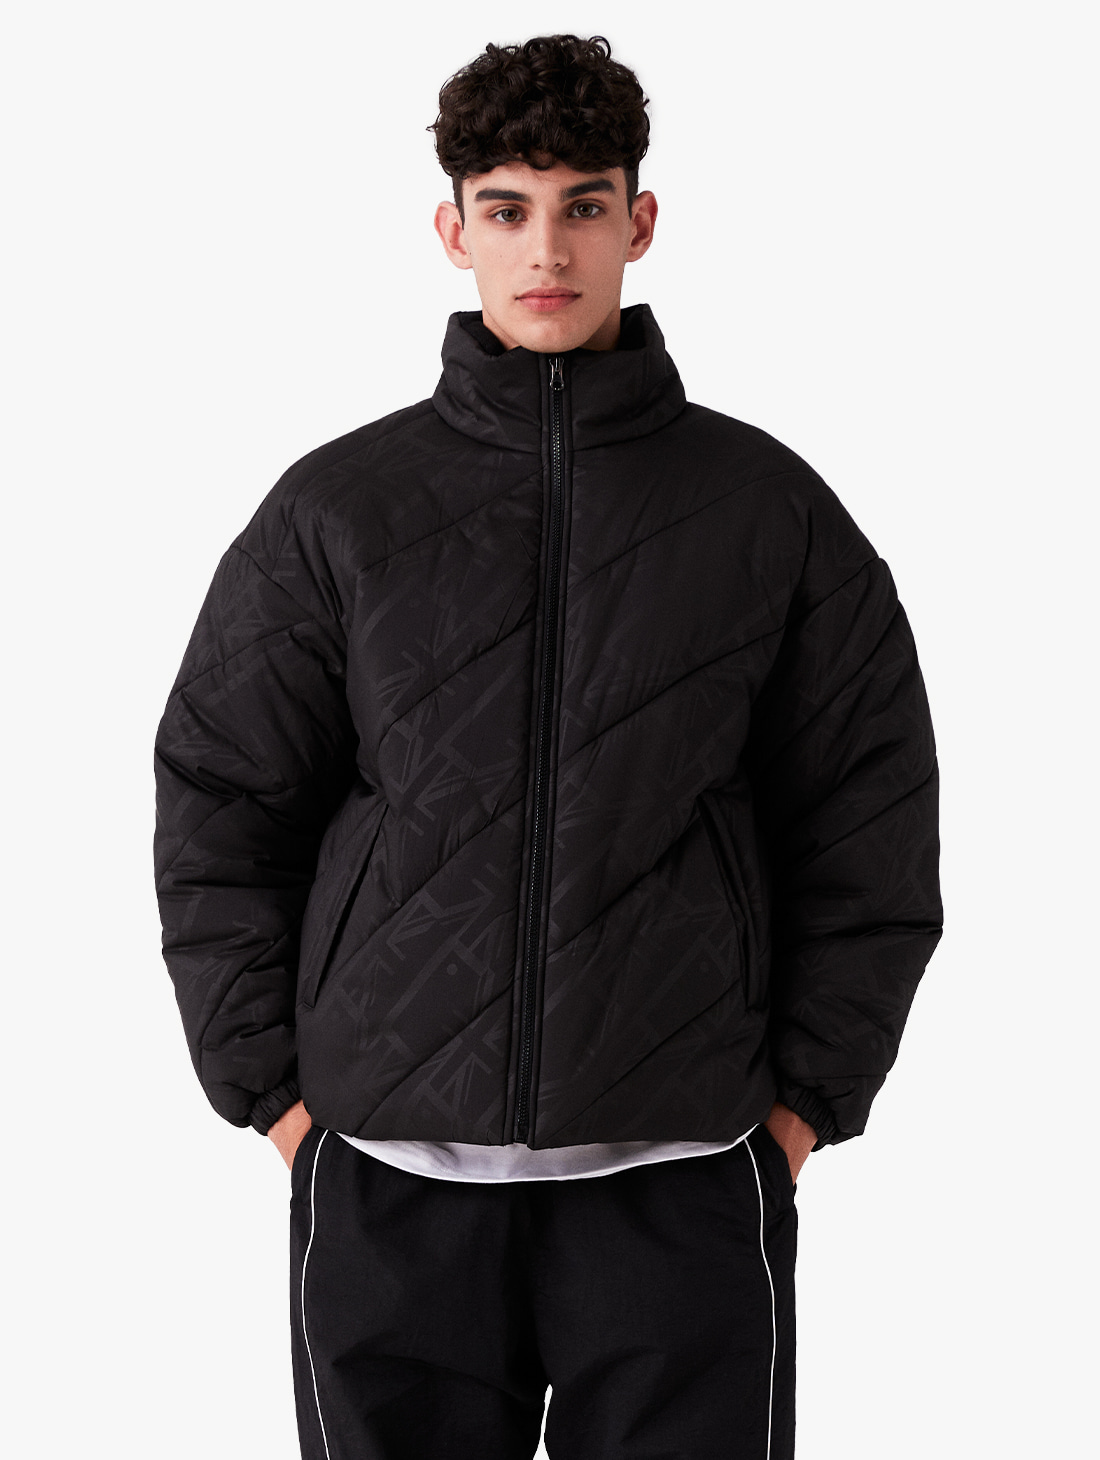 WWFC DIAGONAL EMBO PADDED JACKET